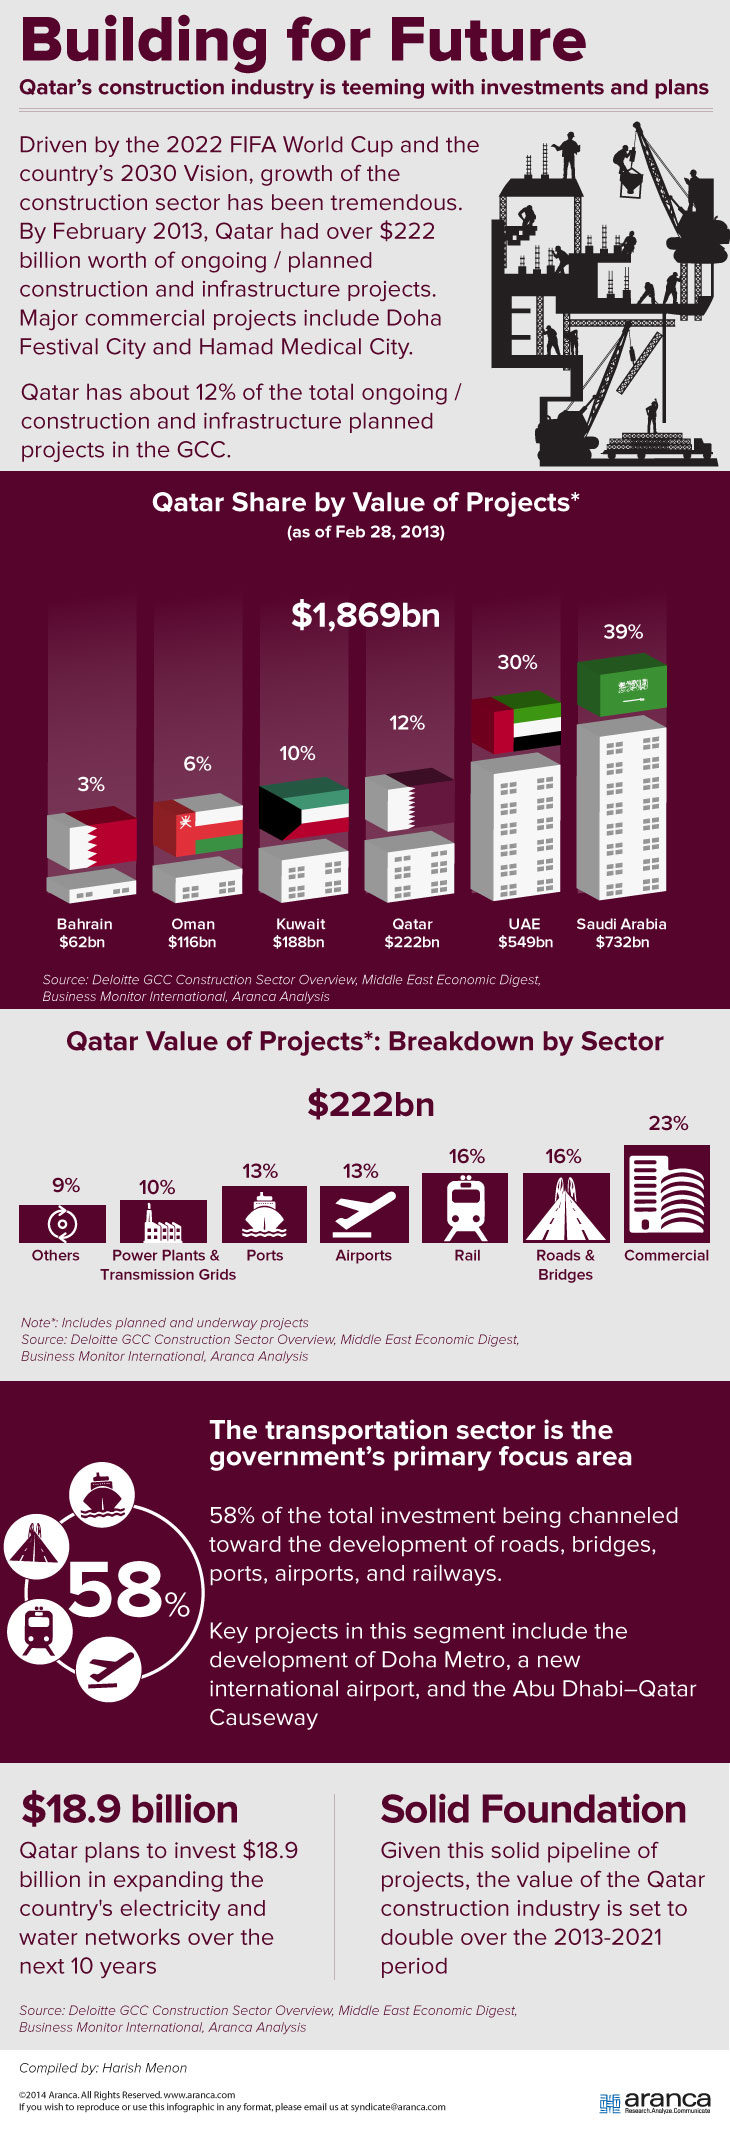 Qatar's Construction Industry